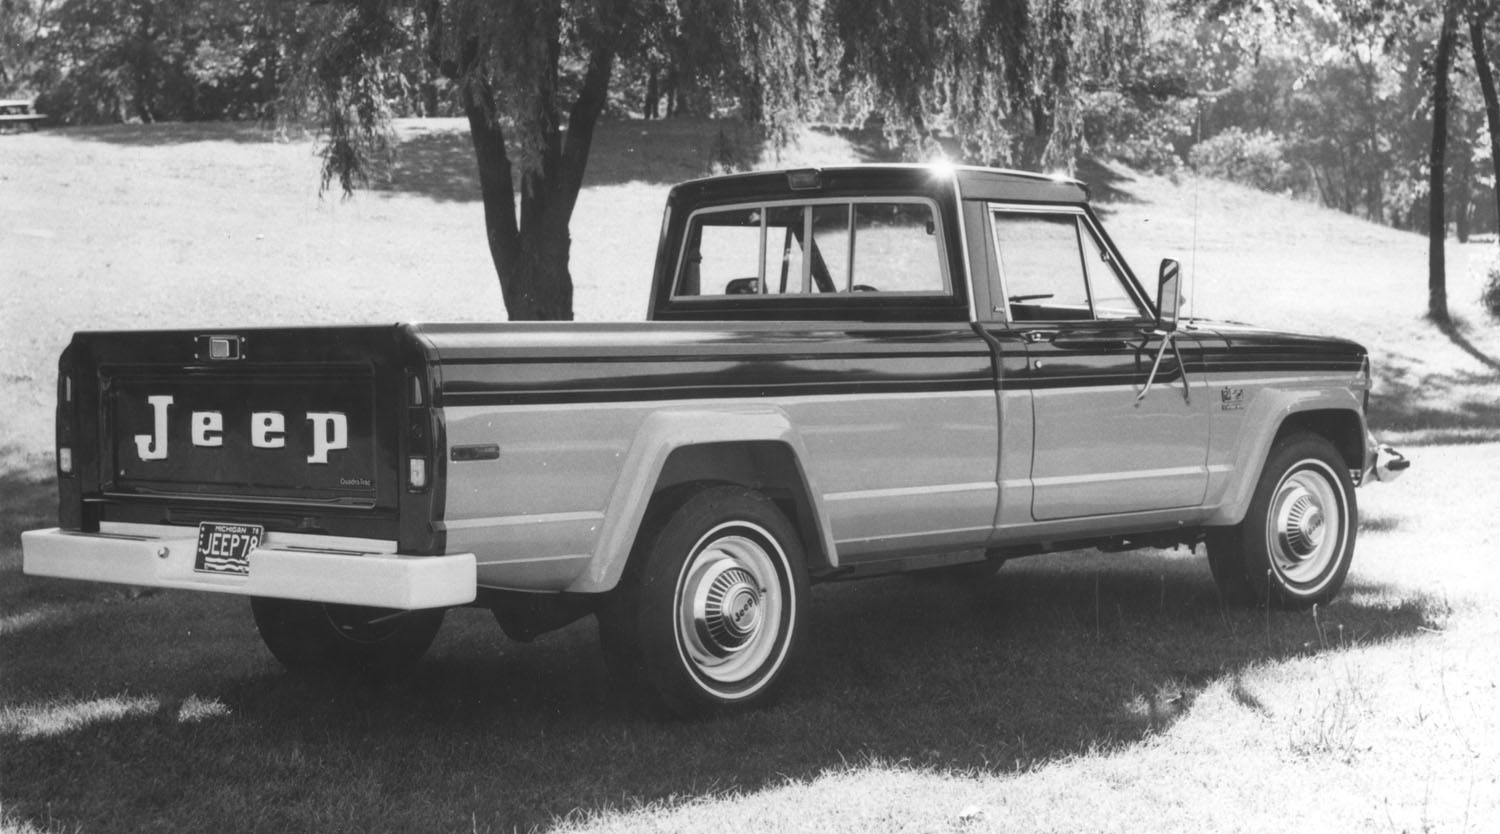 hight resolution of the burly fella in the jeep lineup for 1978 was the j 20 model 46 with a maximum gvw of 8 400 lbs it was rated to tow up to 10 000 lbs with 3 3